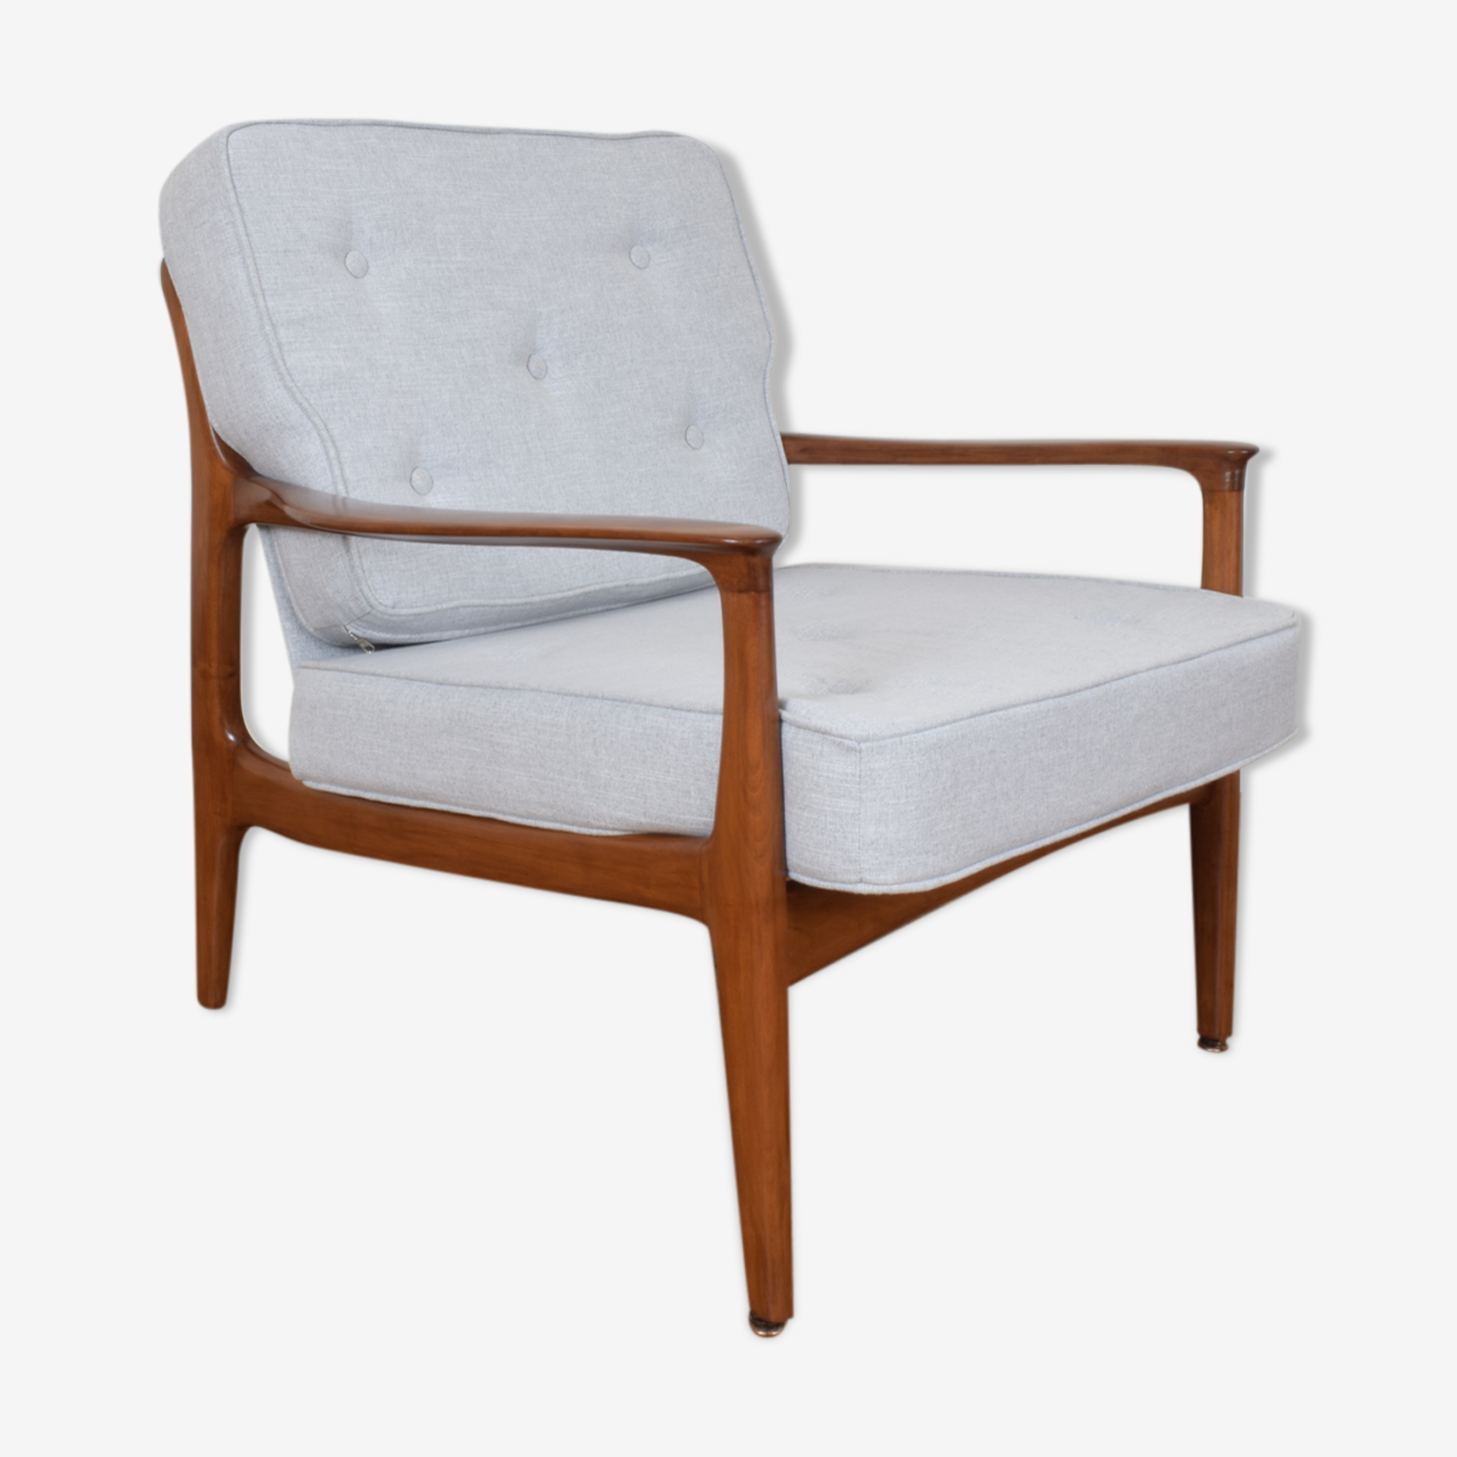 Mid-century teak lounge chair by Eugen Schmidt for Soloform, 1960s